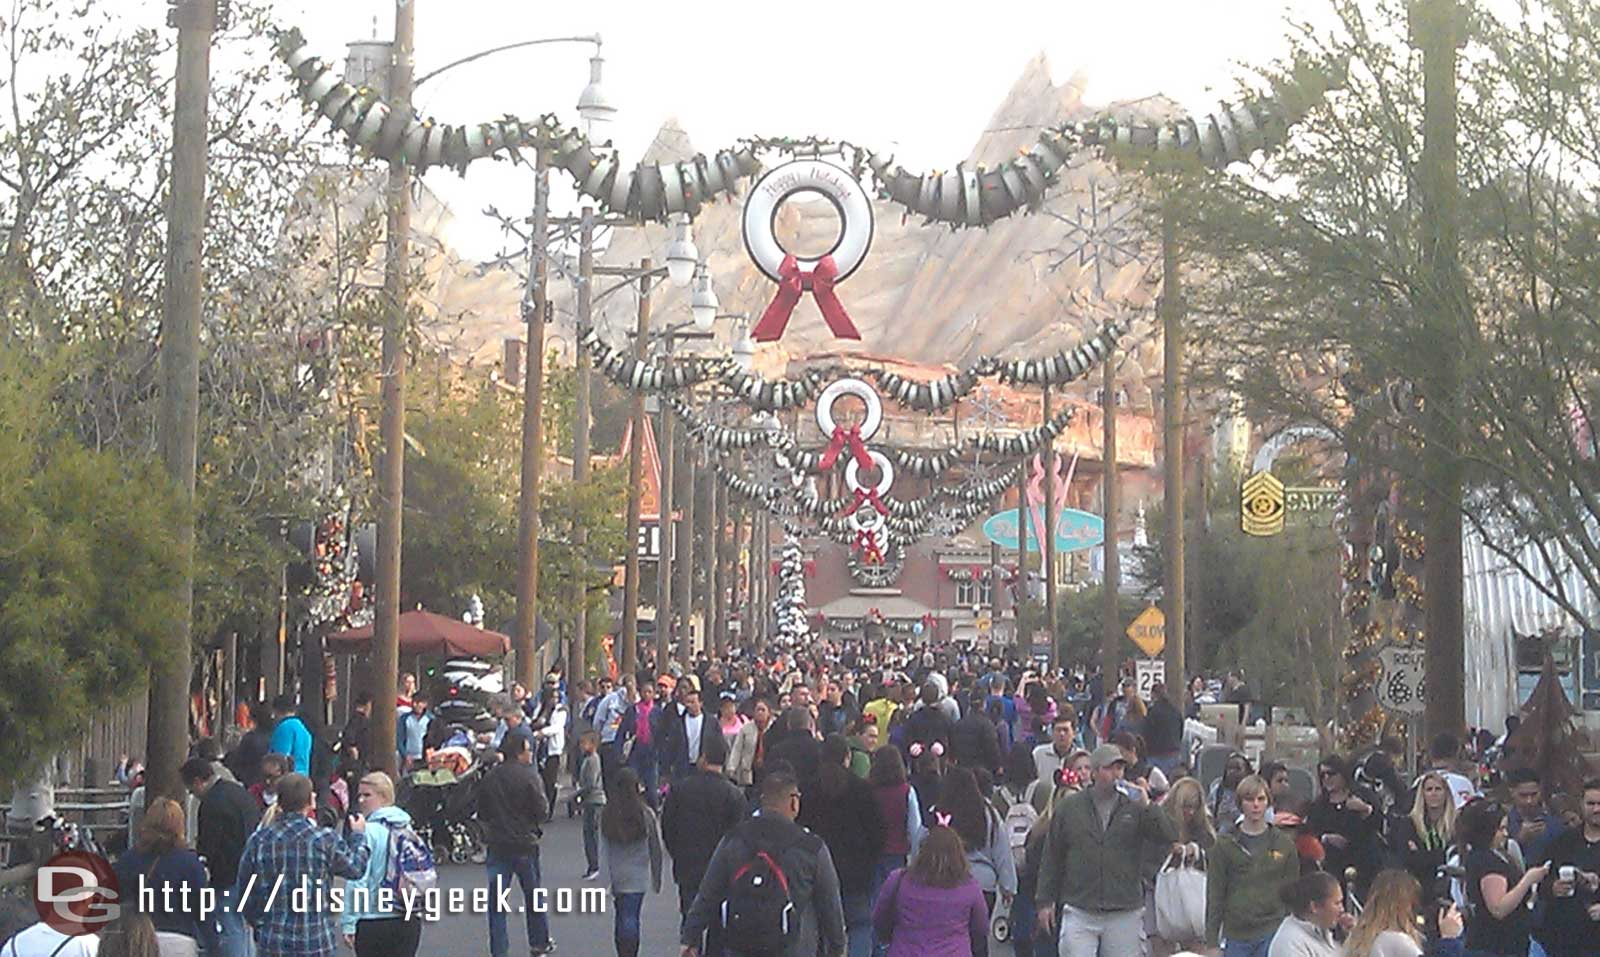 A look down a fairly crowded Route 66 this afternoon in #CarsLand